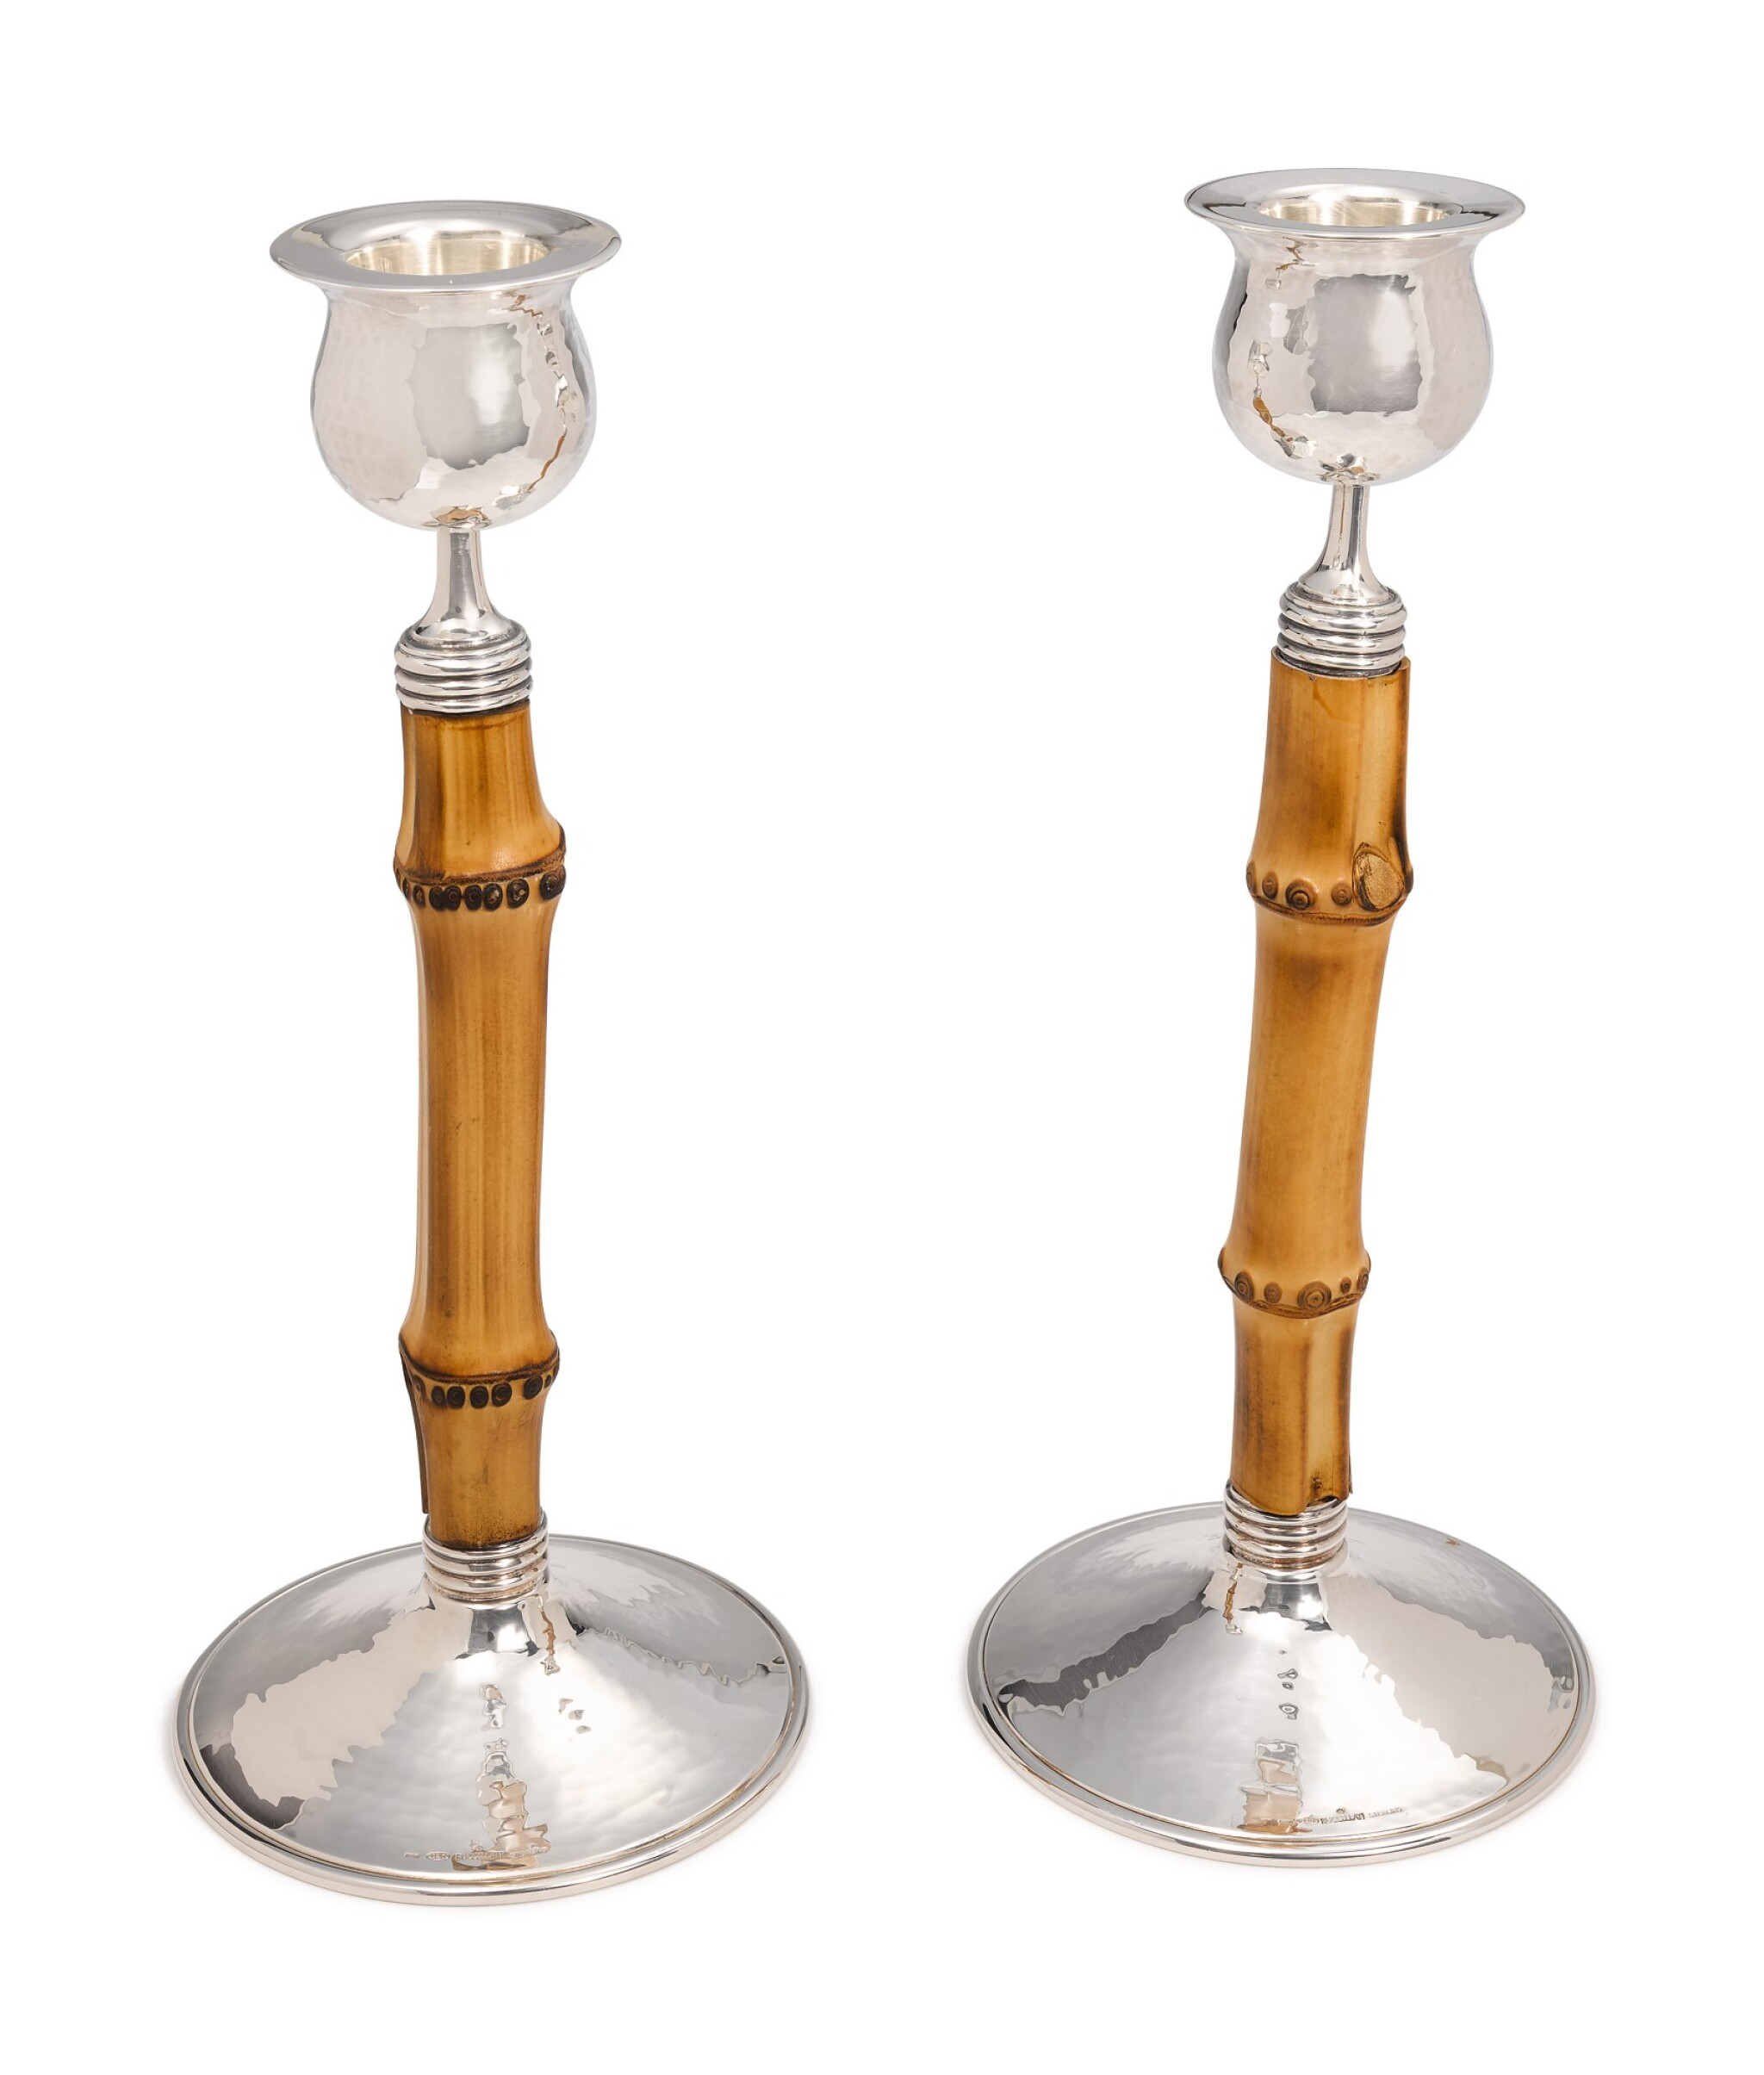 View full screen - View 1 of Lot 317. A PAIR OF ITALIAN SILVER AND BAMBOO TAHITI PATTERN CANDLESTICKS, BUCCELLATI, MILAN, 20TH CENTURY.